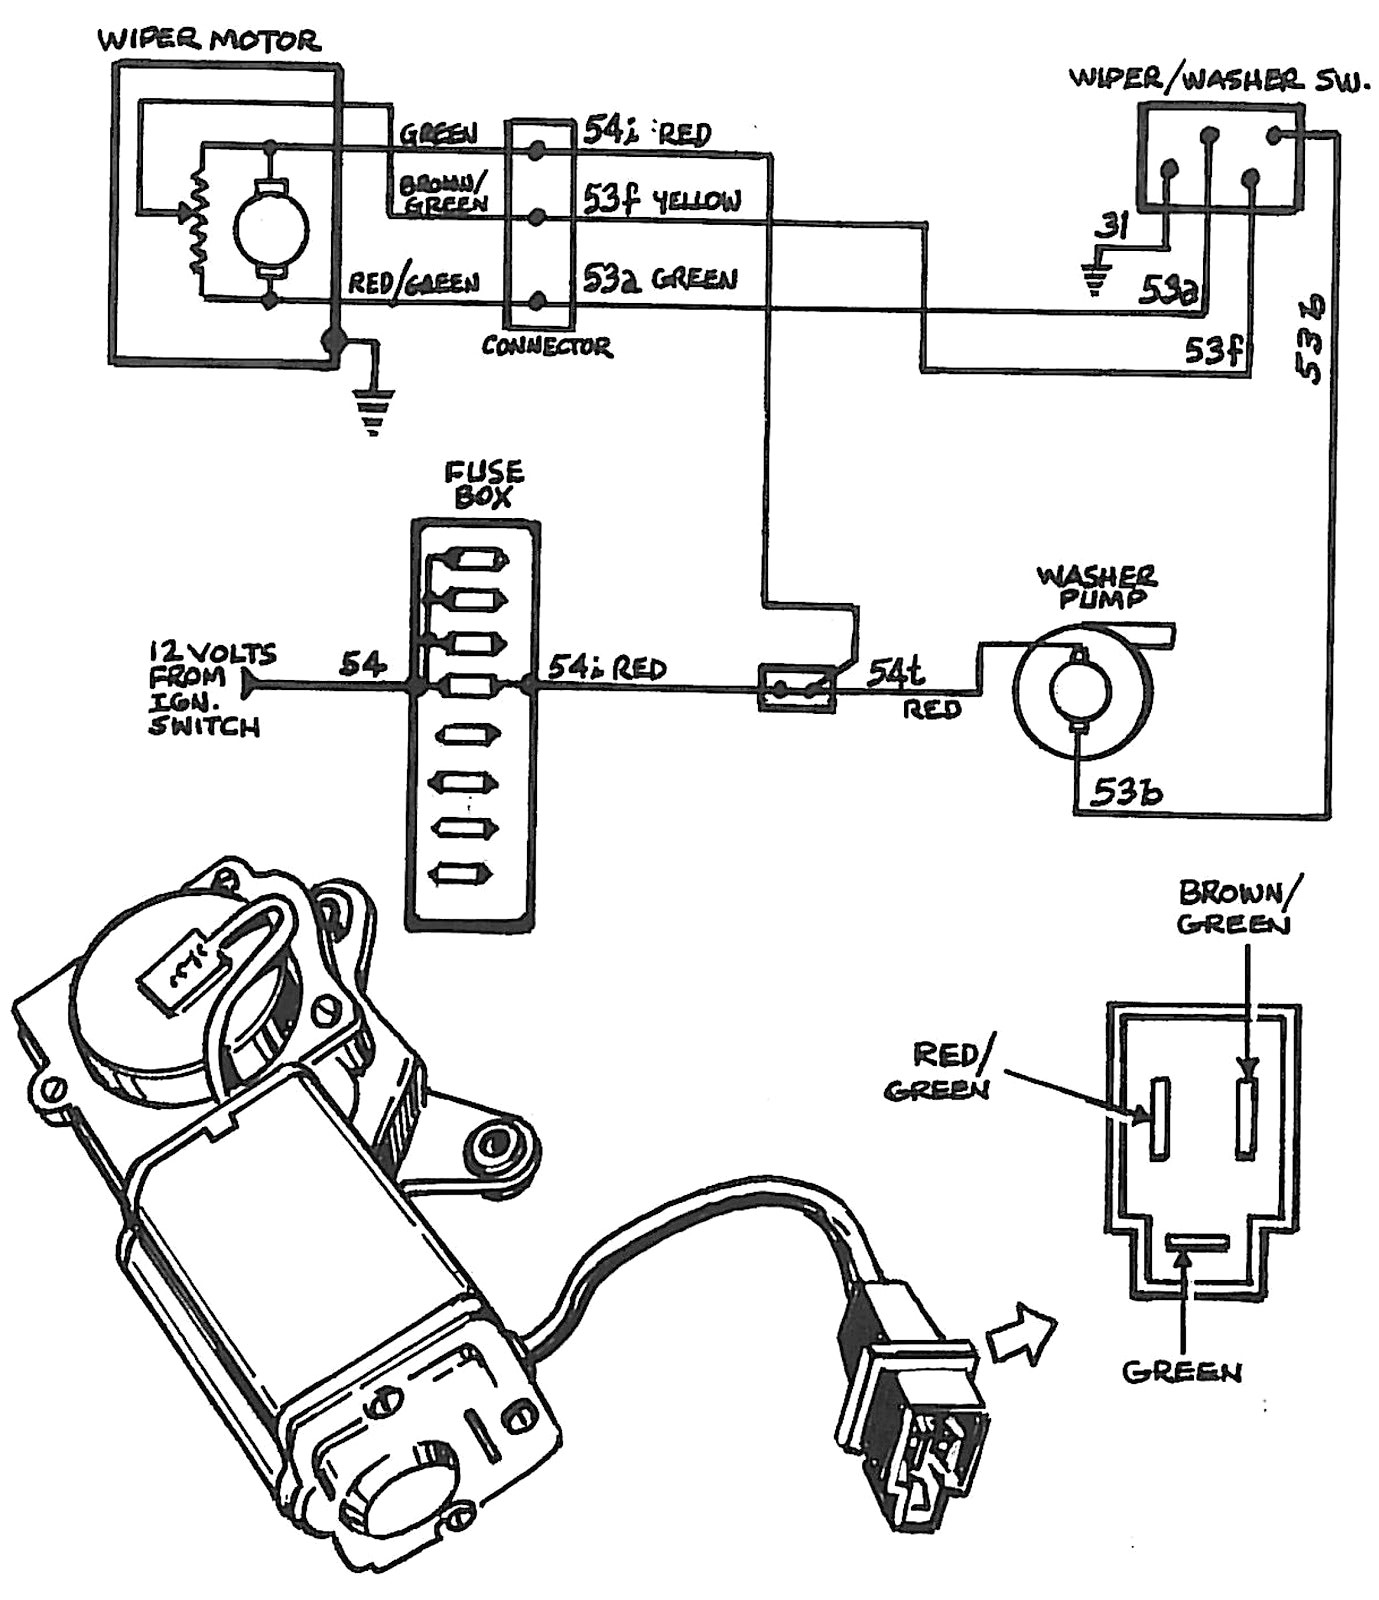 Wiper Motor Diagram Windshield Wiper Motor Wiring Diagram Fitfathers Me Inside Blurts Of Wiper Motor Diagram